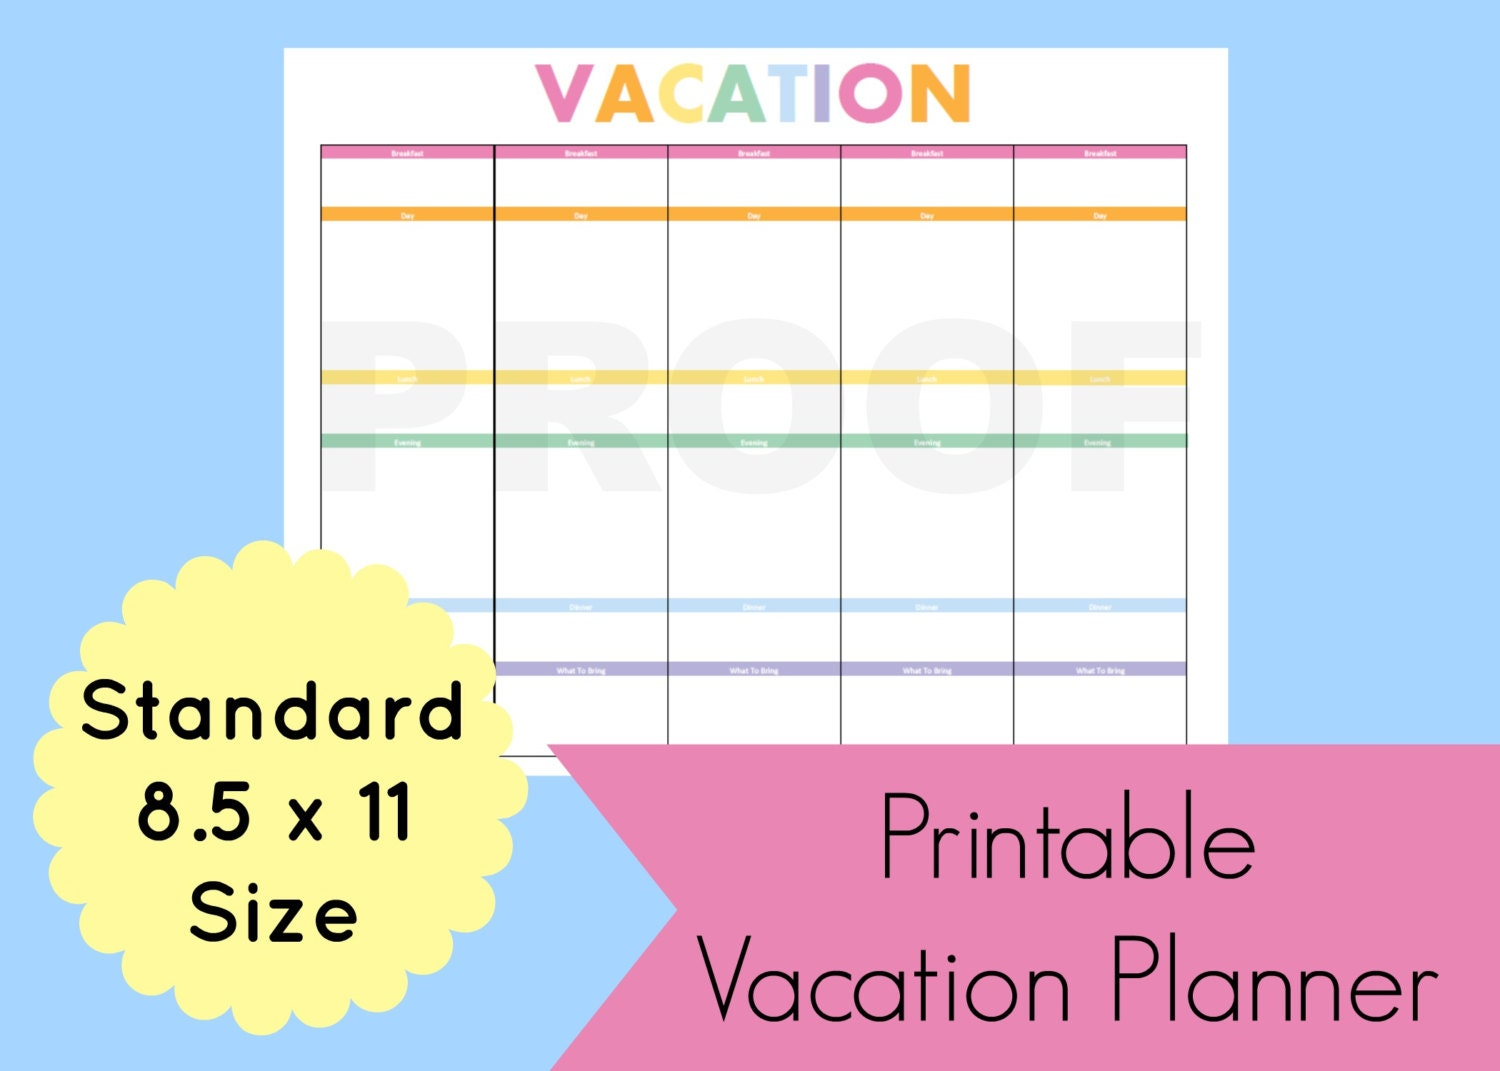 Vacation Itinerary Template Vacation Planner By Commandcenter